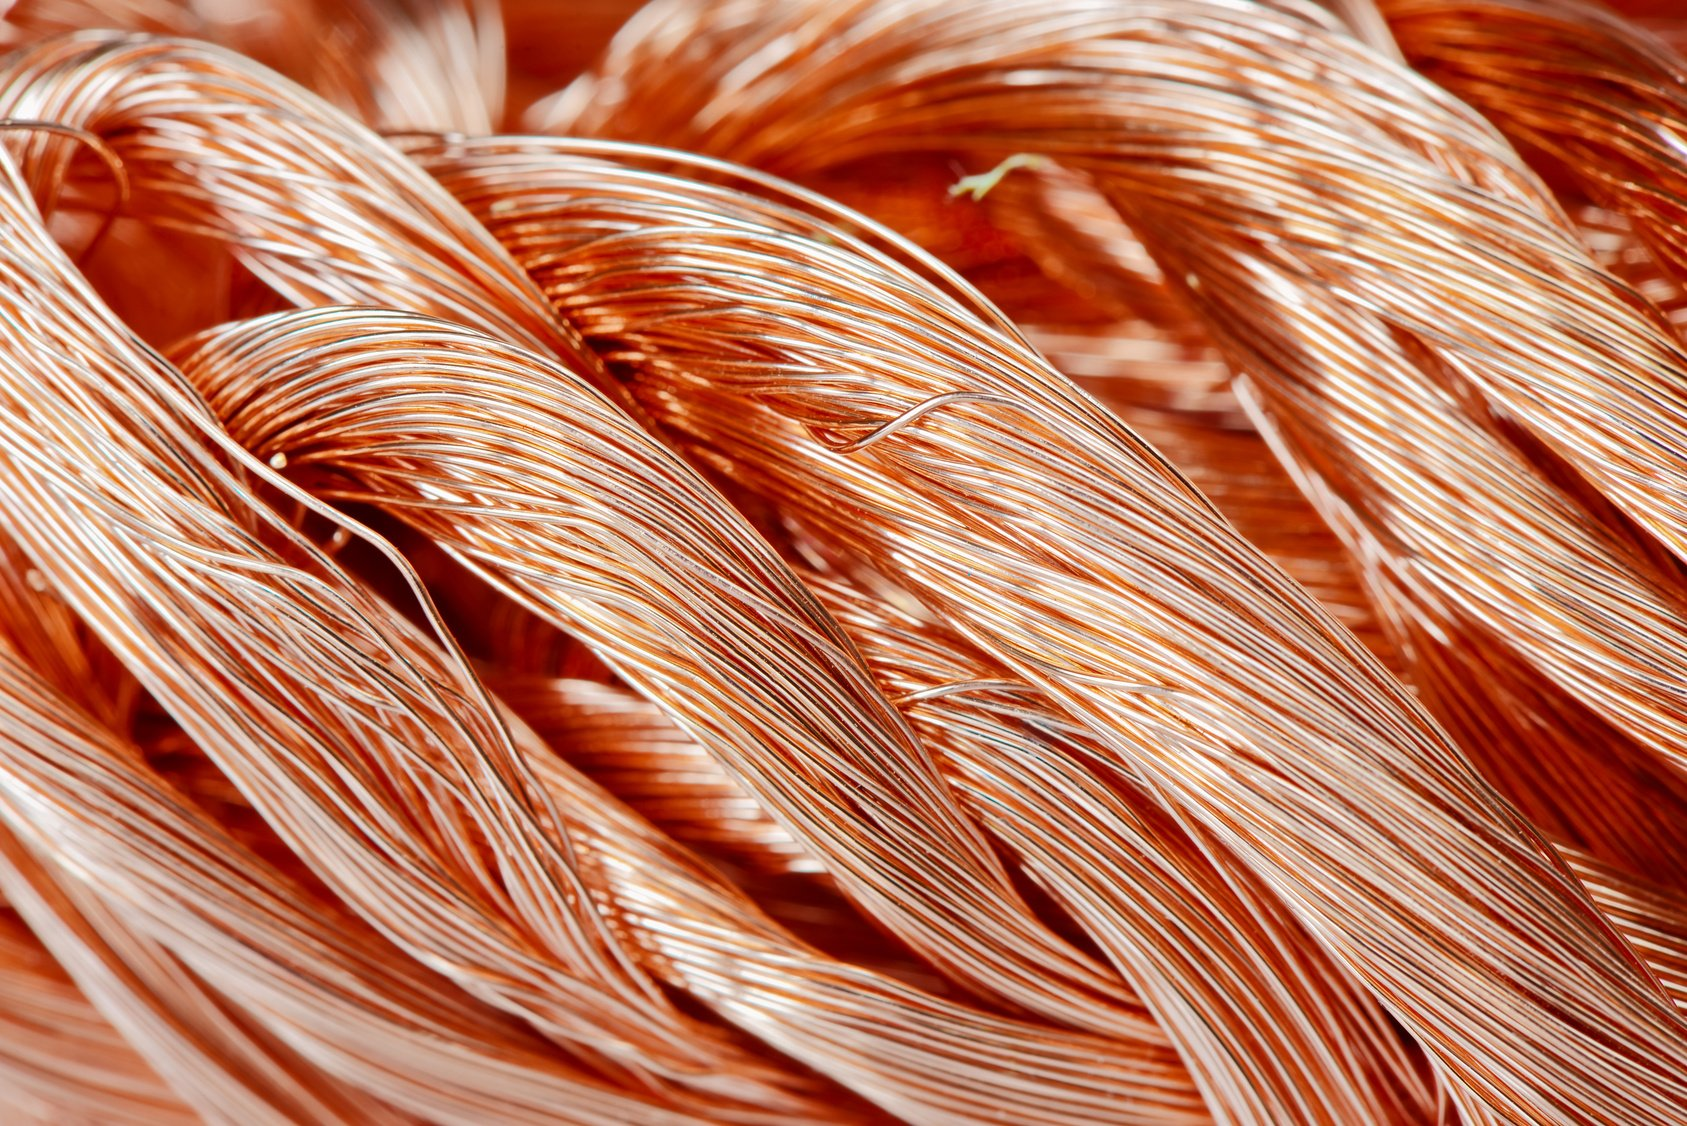 HOW TO PROTECT YOUR BUILDING FROM COPPER THEFT